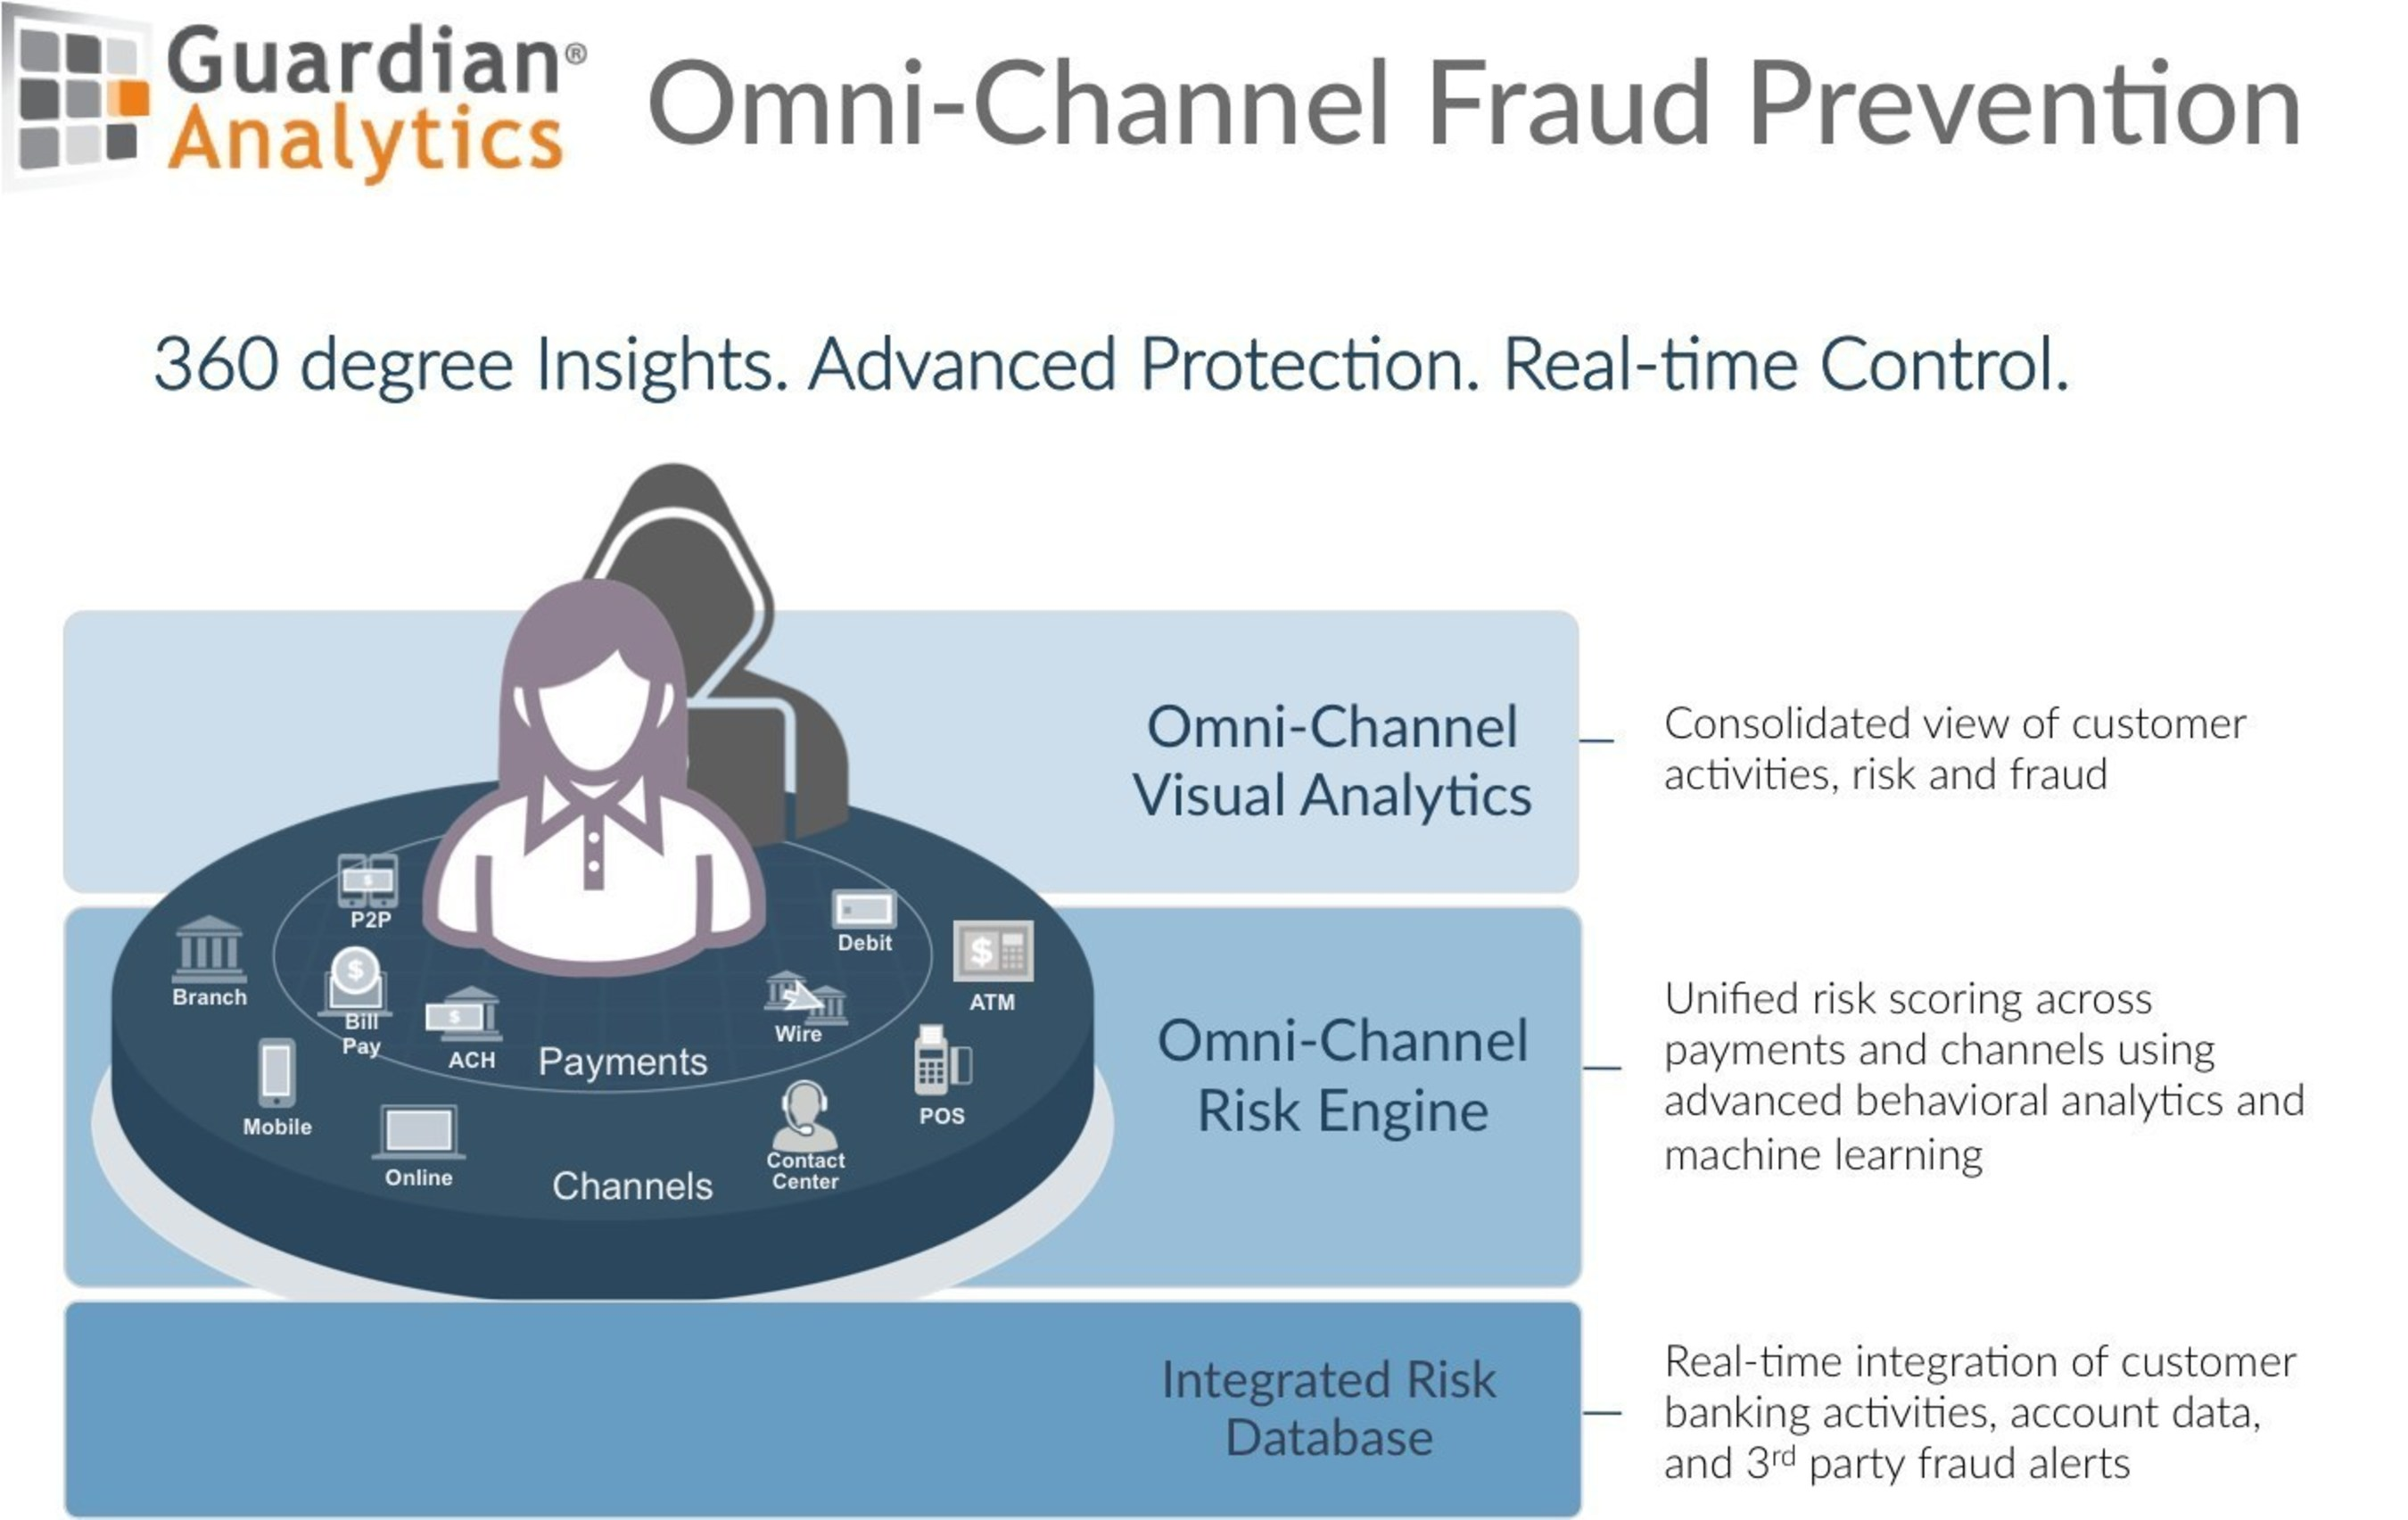 New from Guardian Analytics: Omni-Channel Fraud Prevention